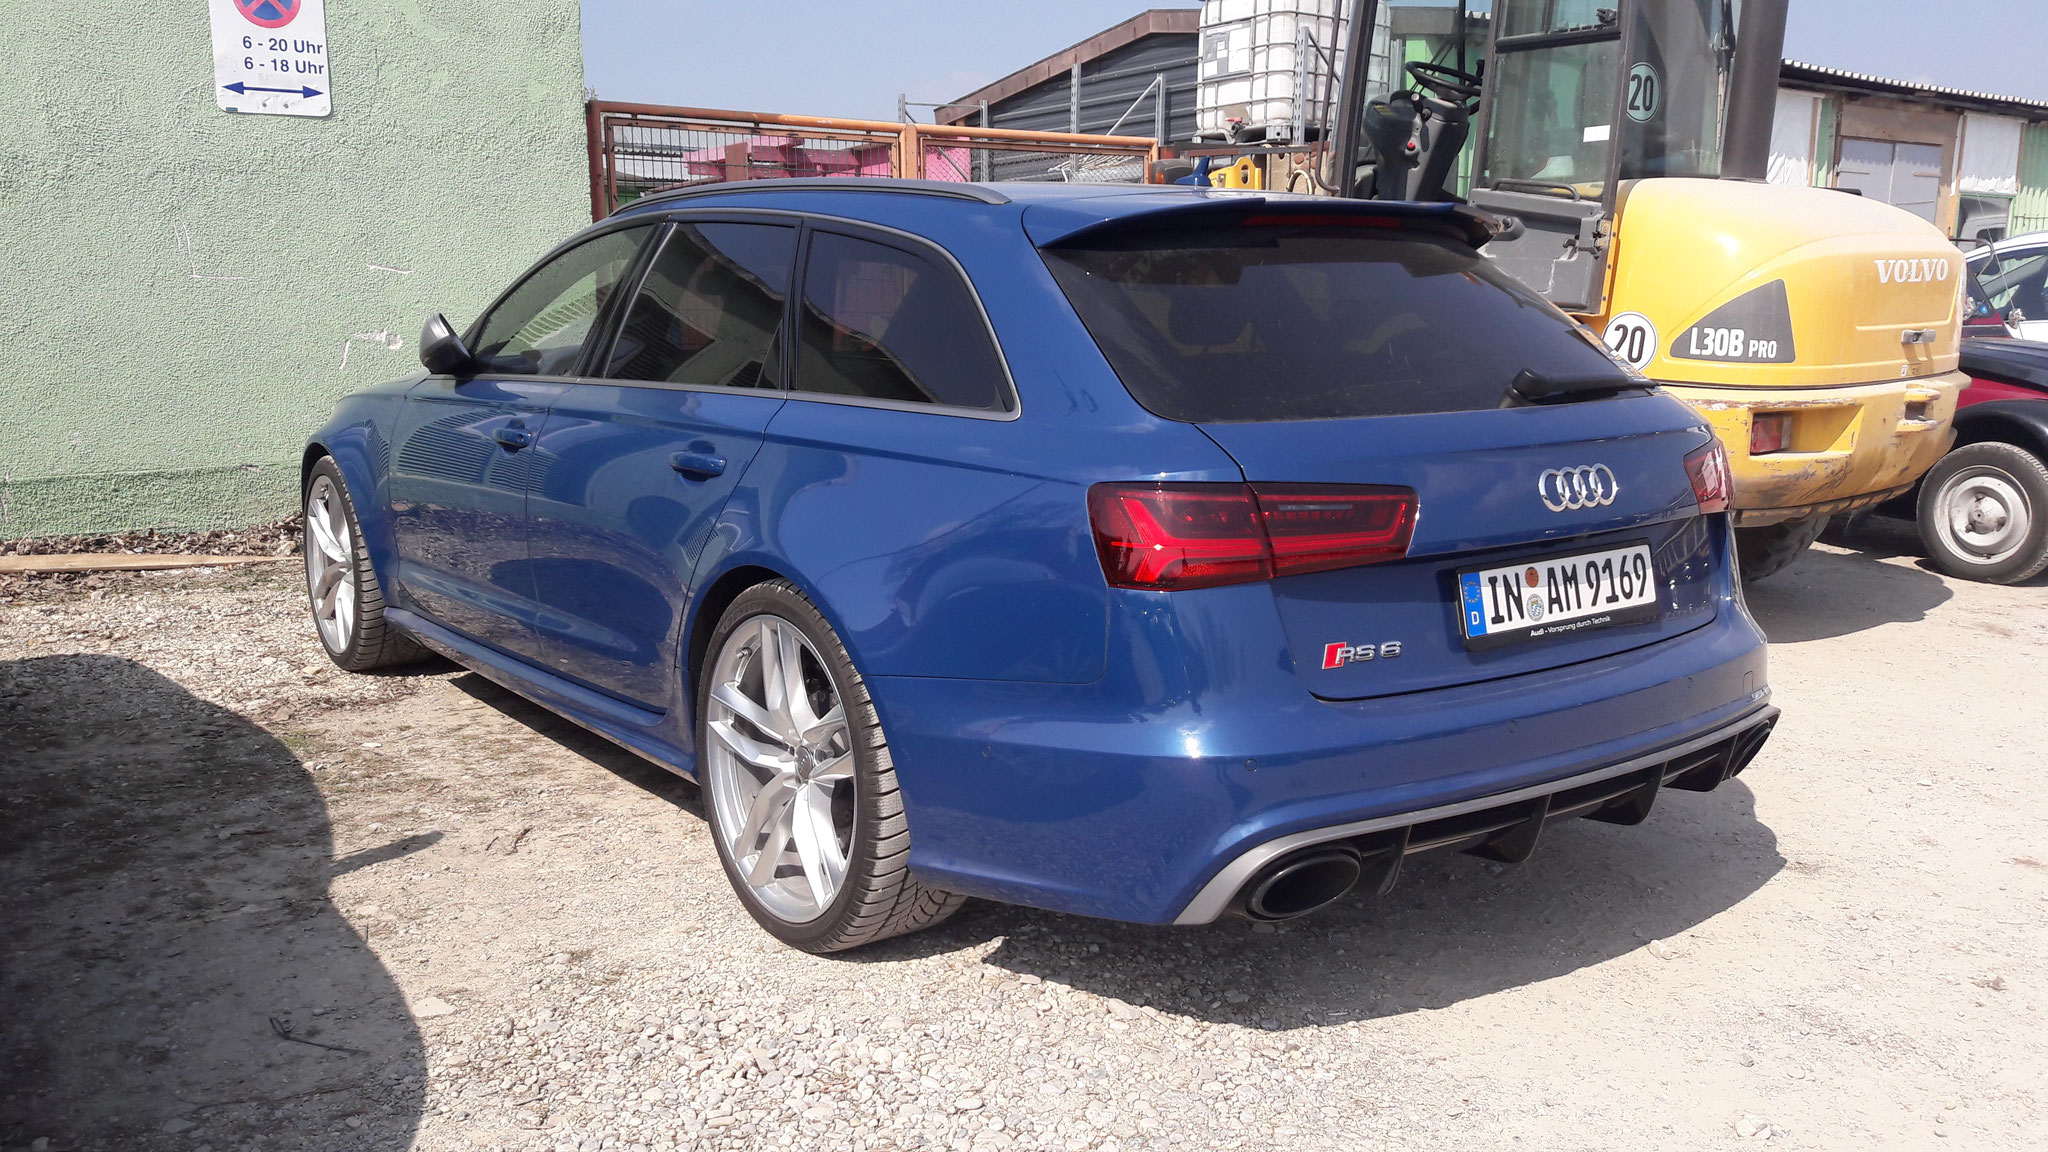 Audi RS6 - IN-AM-9169